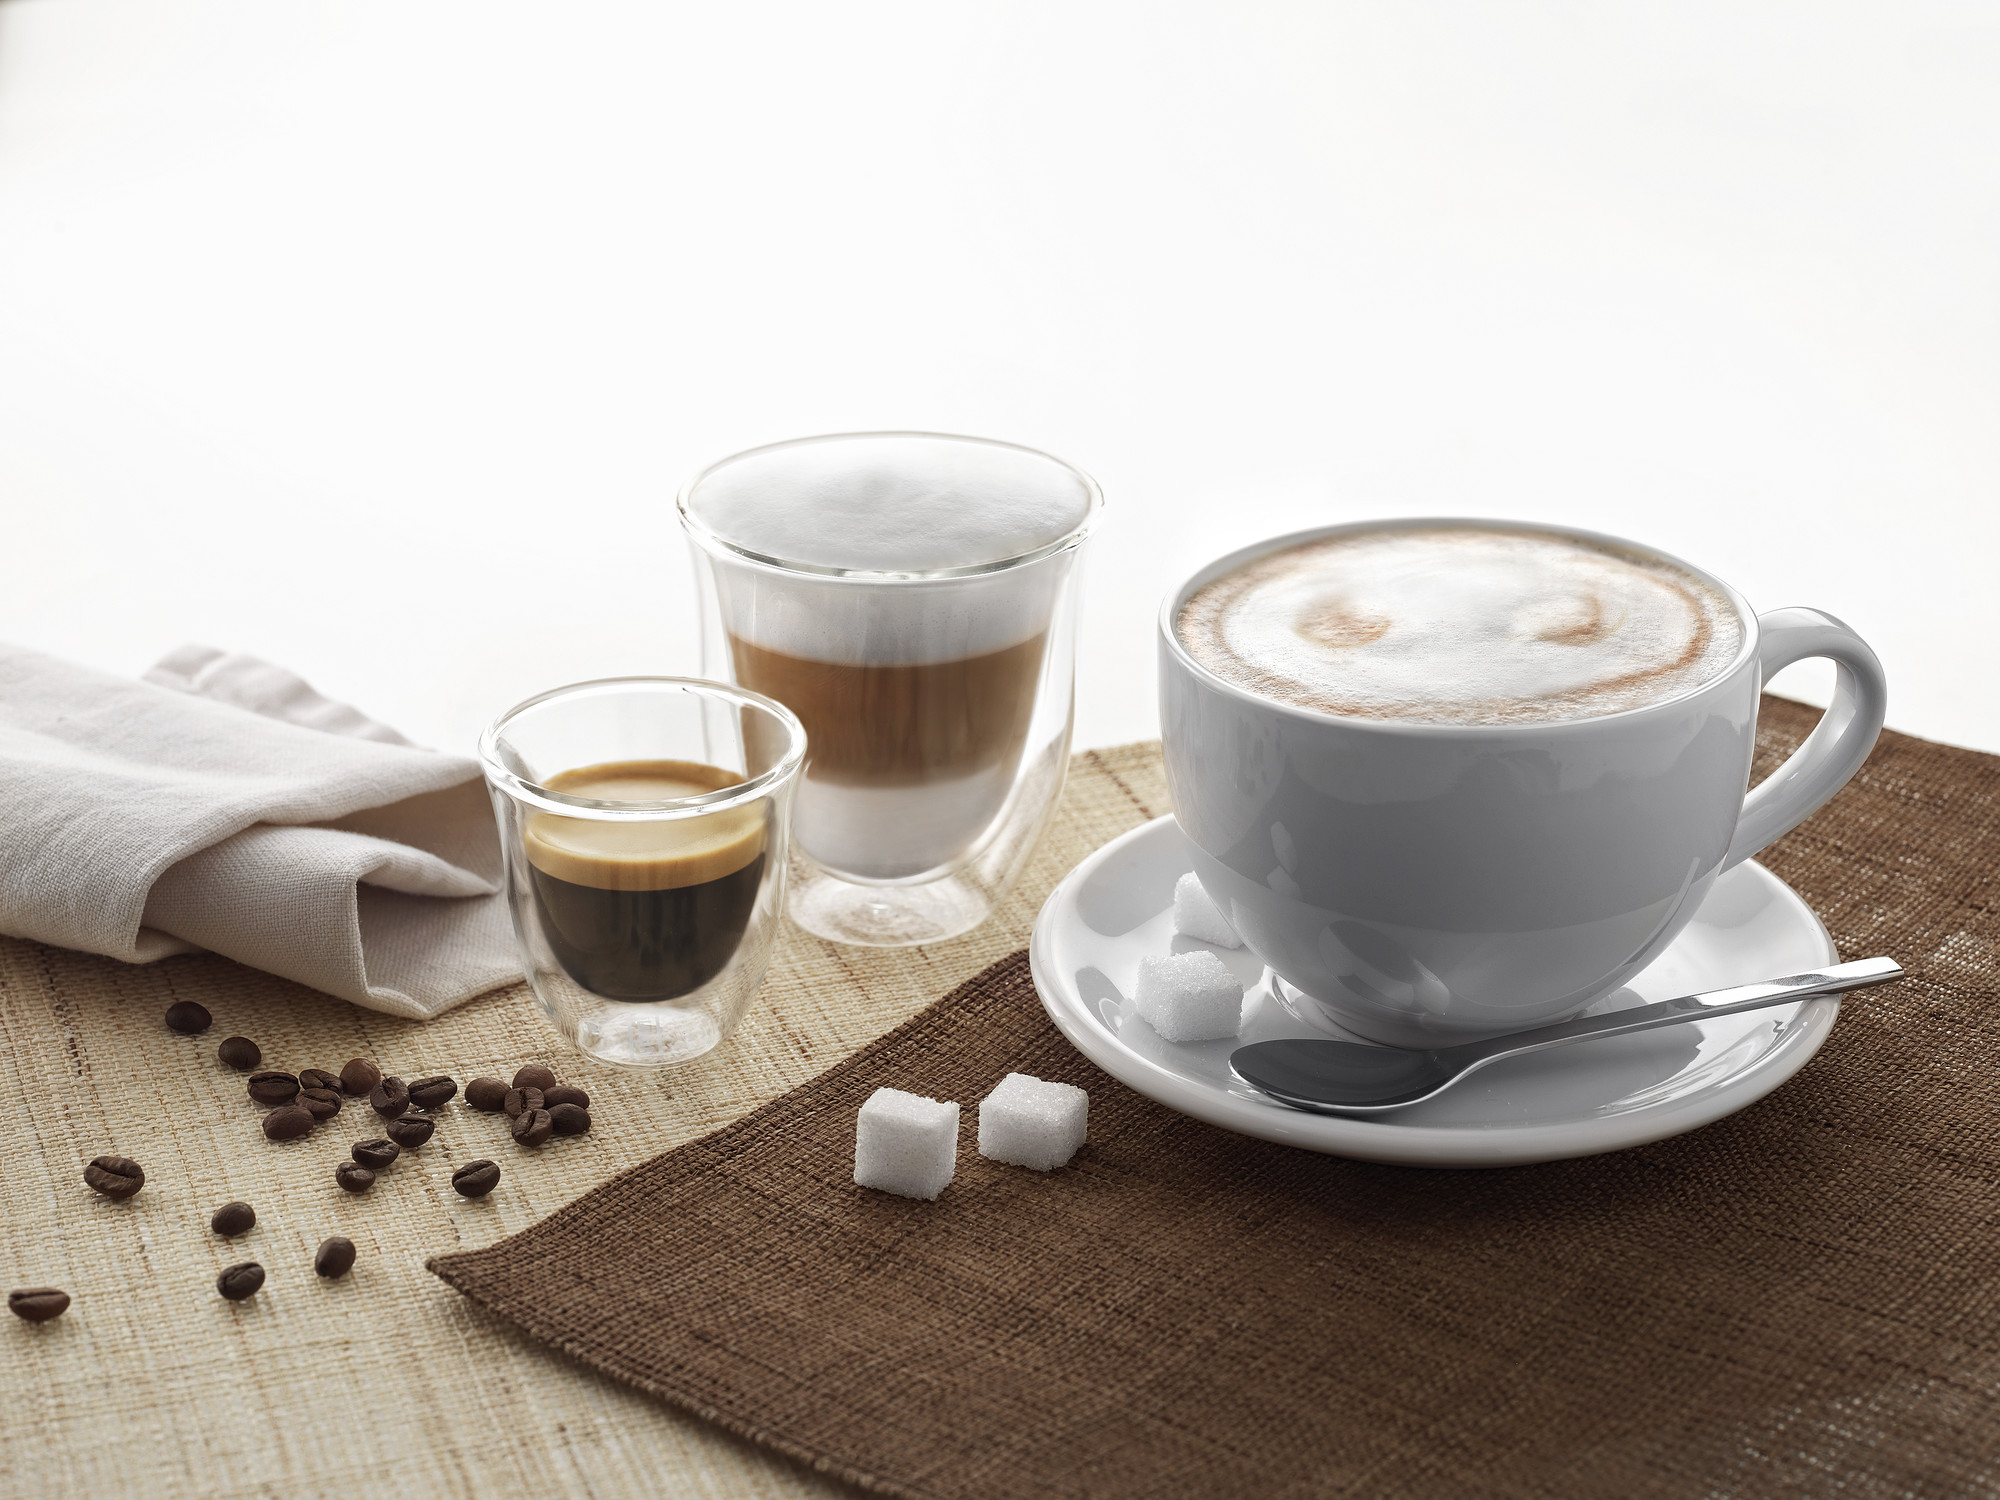 various cups of coffee on a table